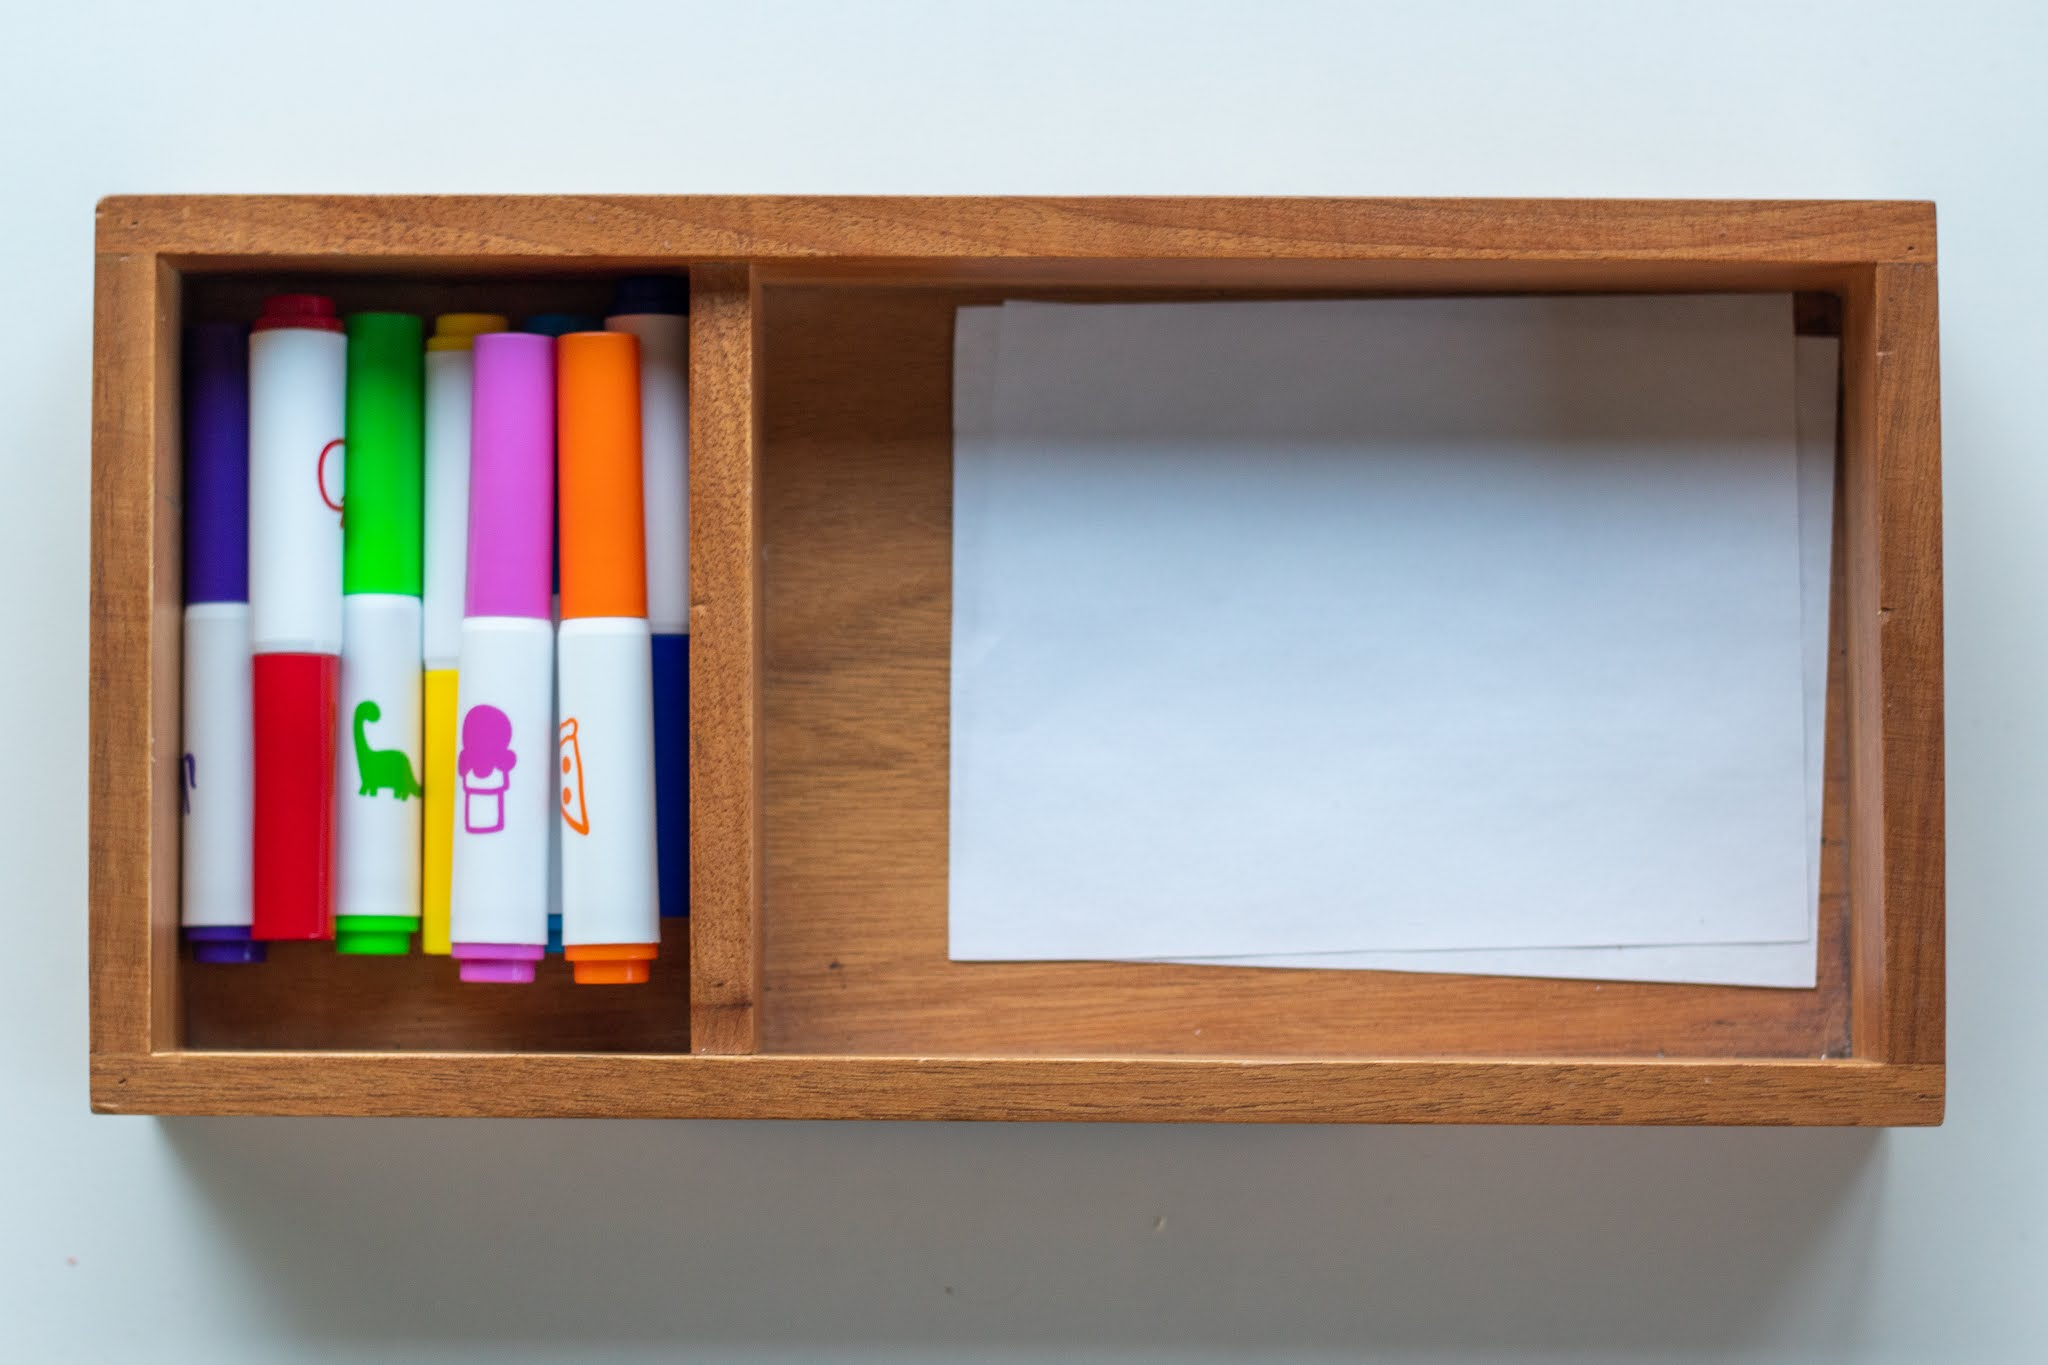 Montessori toddler art supplies at 3-years-old. Here's a look at a few choices and how to set them up for Montessori inspired play and art projects.